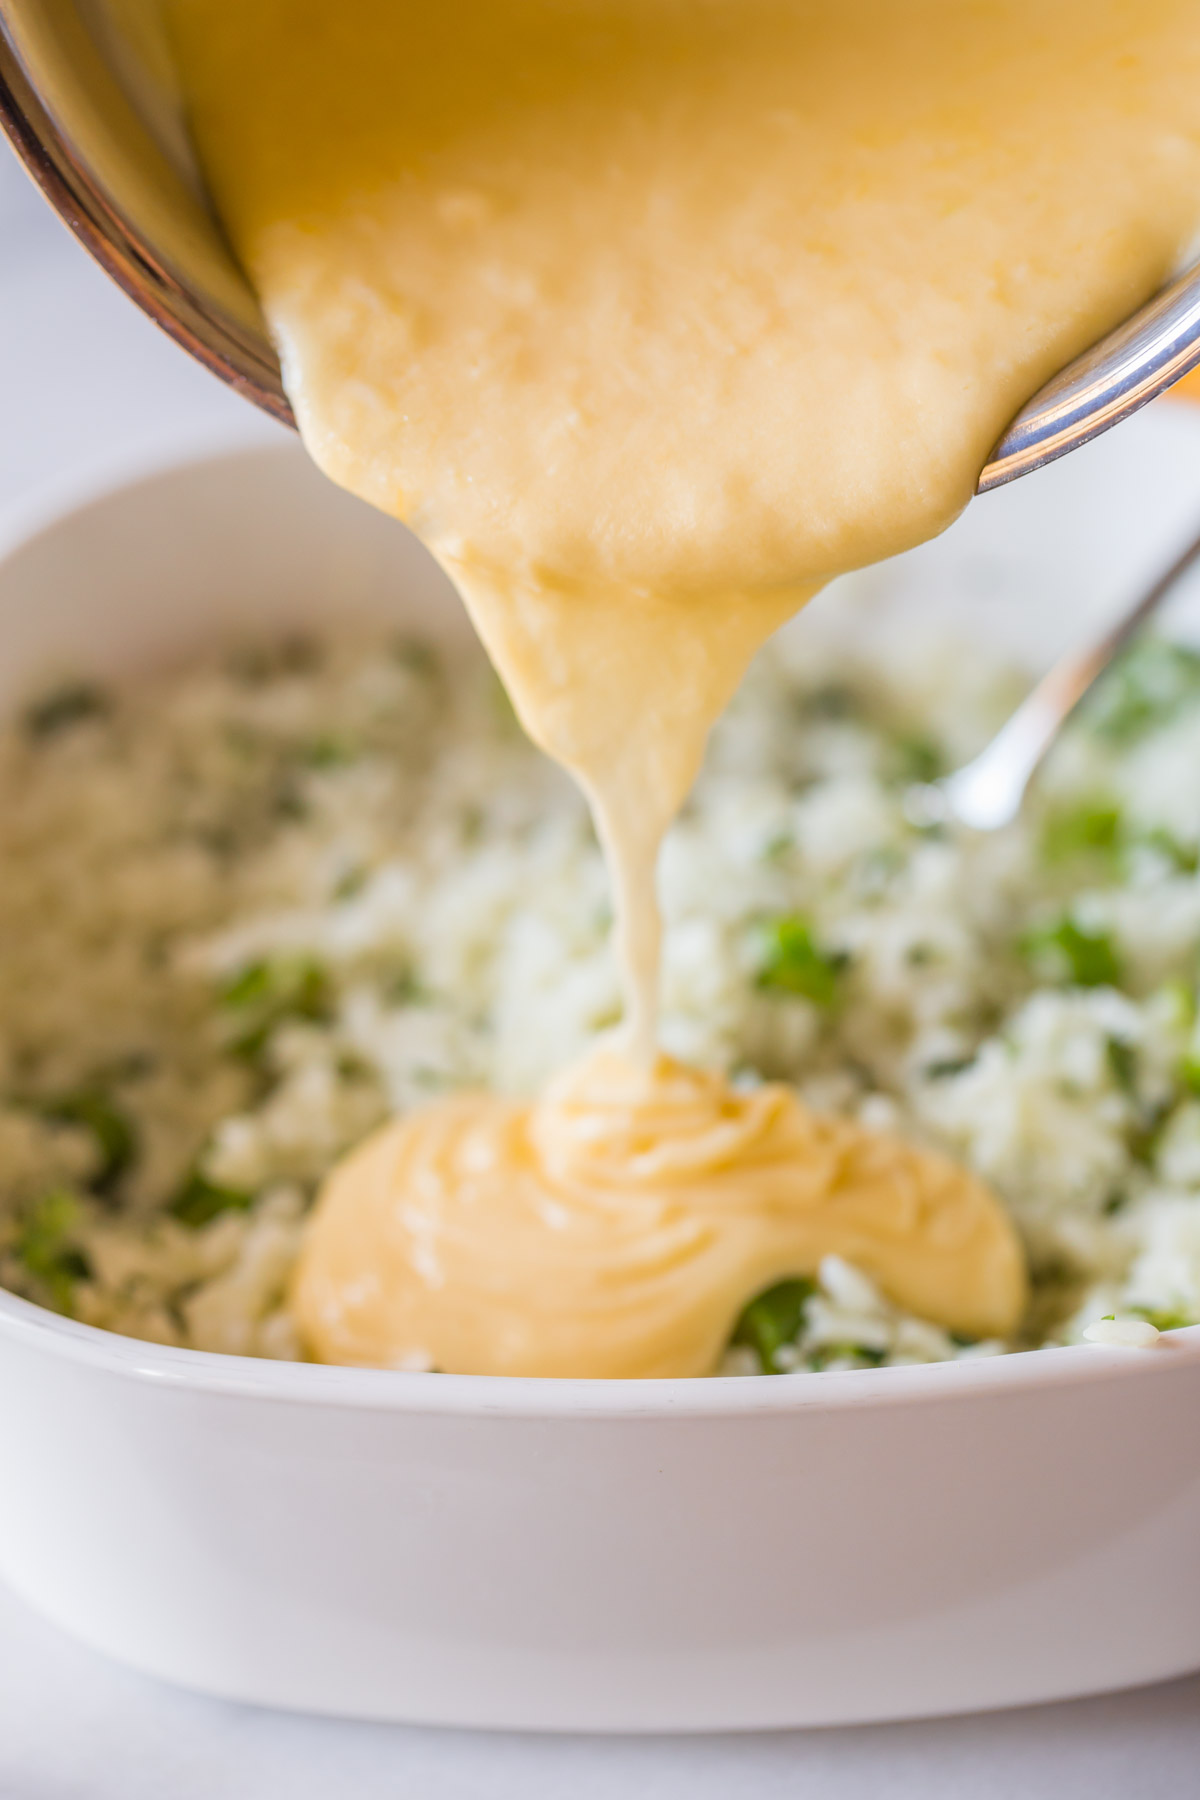 The creamy cheddar cheese sauce being poured on top of the baking dish of white rice and broccoli for the Cheesy Broccoli Rice.